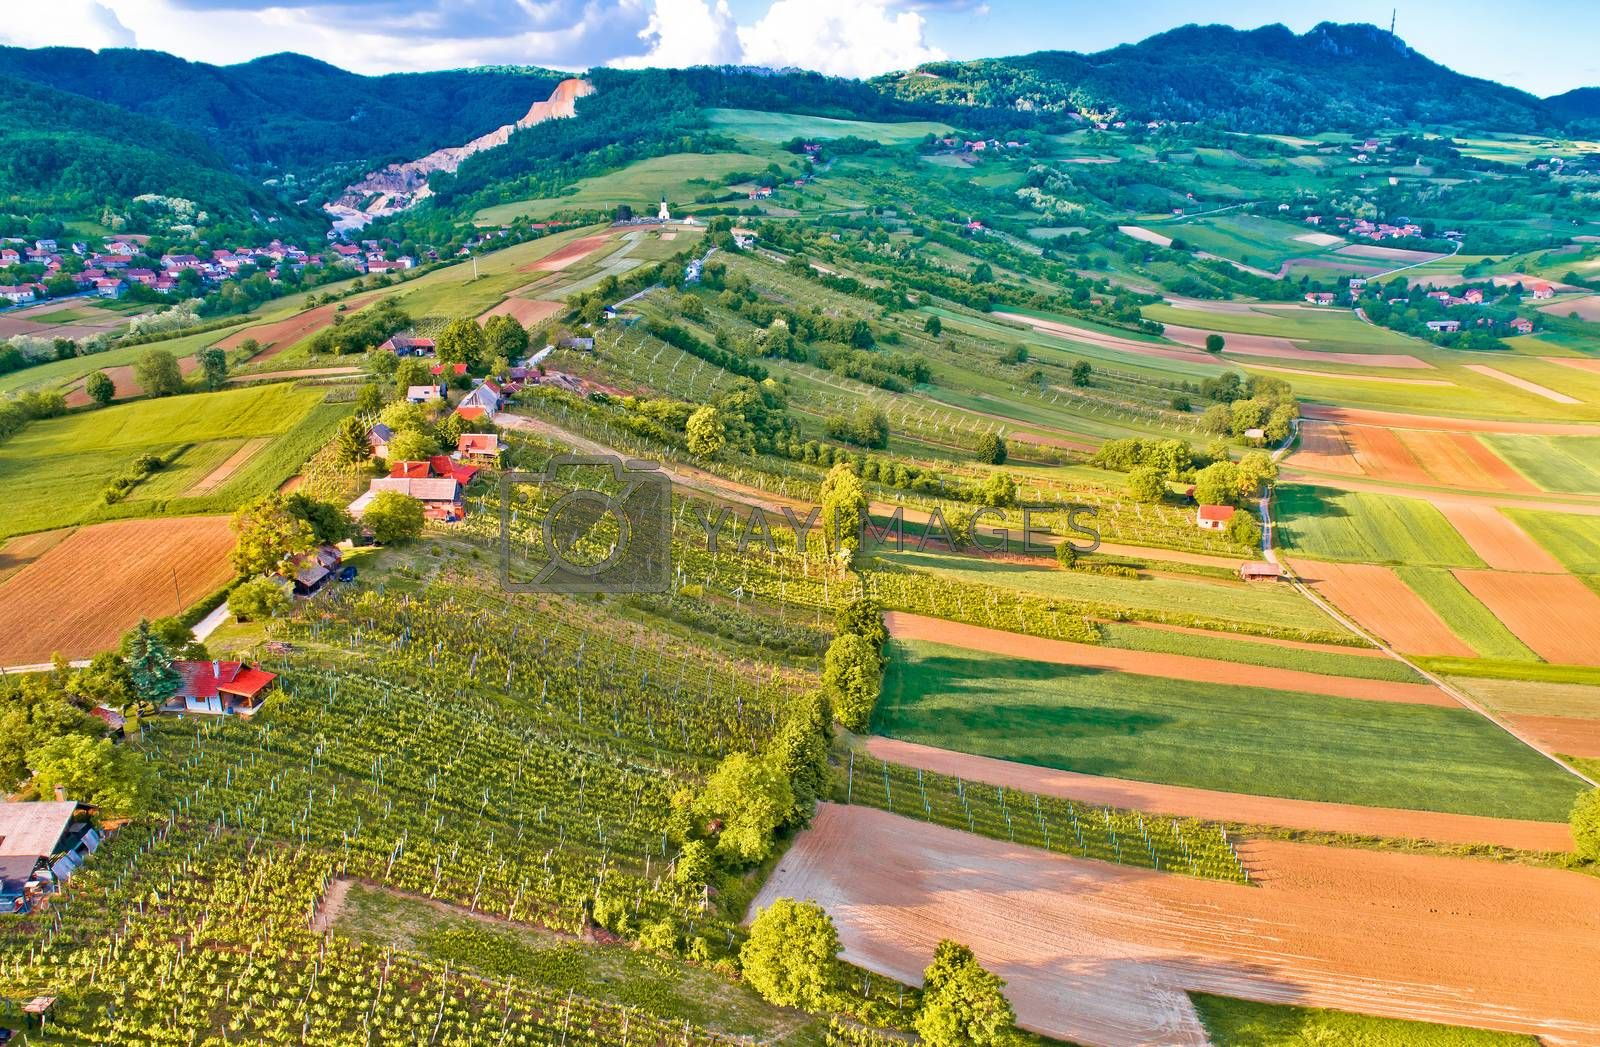 Kalnik mountain and Obreske kleti village aerial view, Prigorje region of Croatia